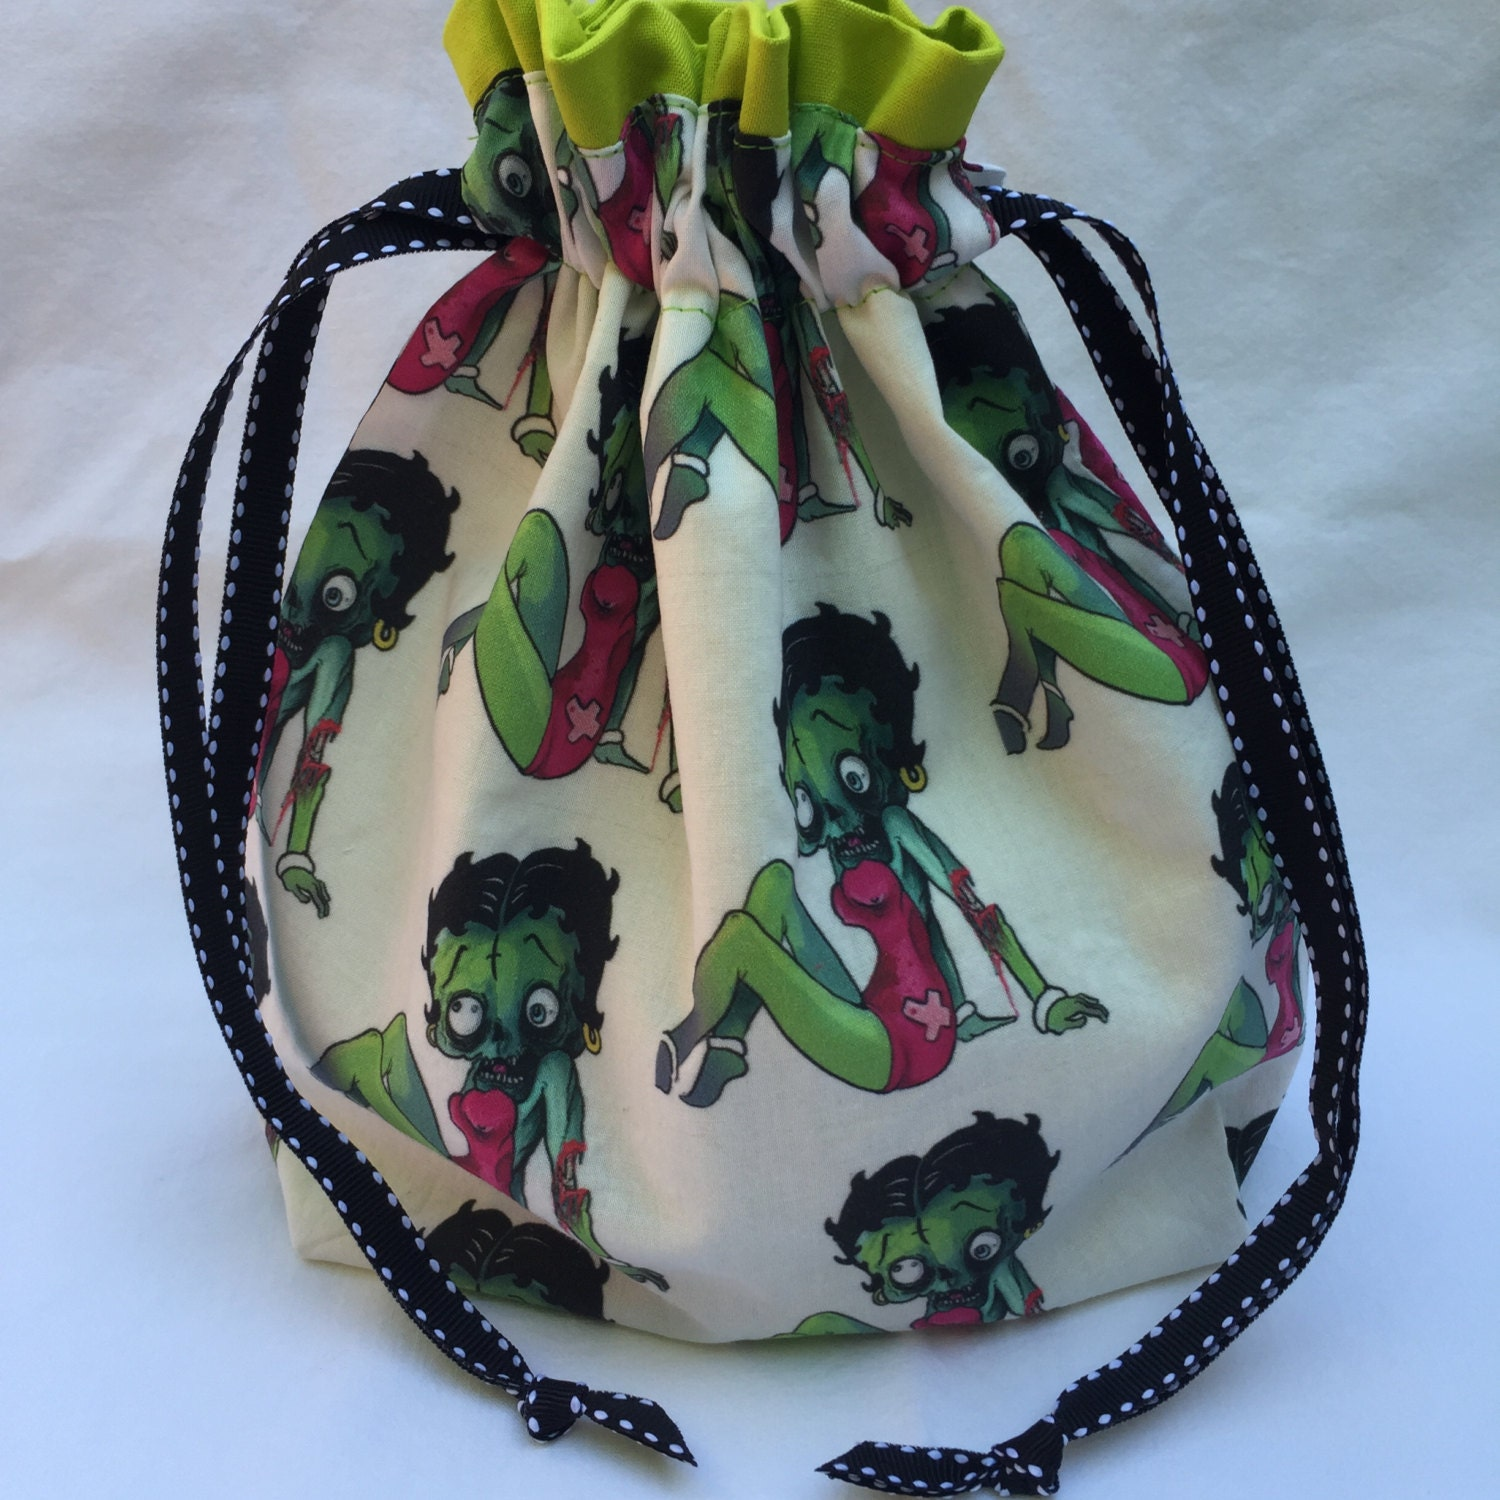 Zombie Knitting Bowl : Zombie betty boop single skein project bag from